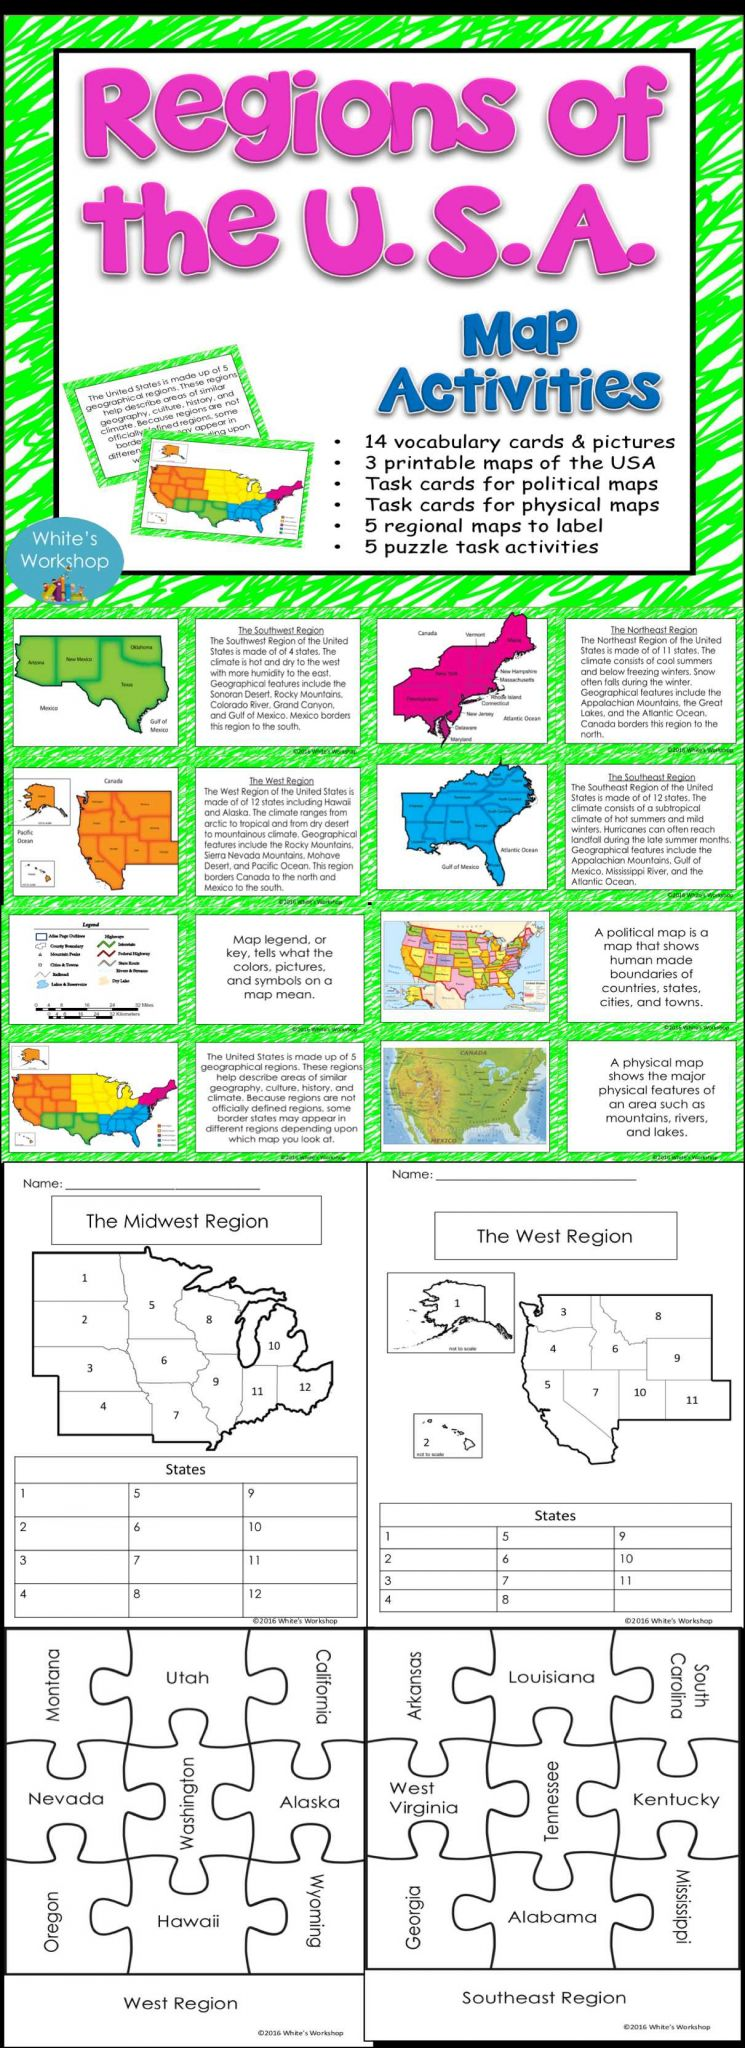 Elementary Teacher Worksheets together with Spookyhalloween Regions Of the U S Map Tasks and Activities